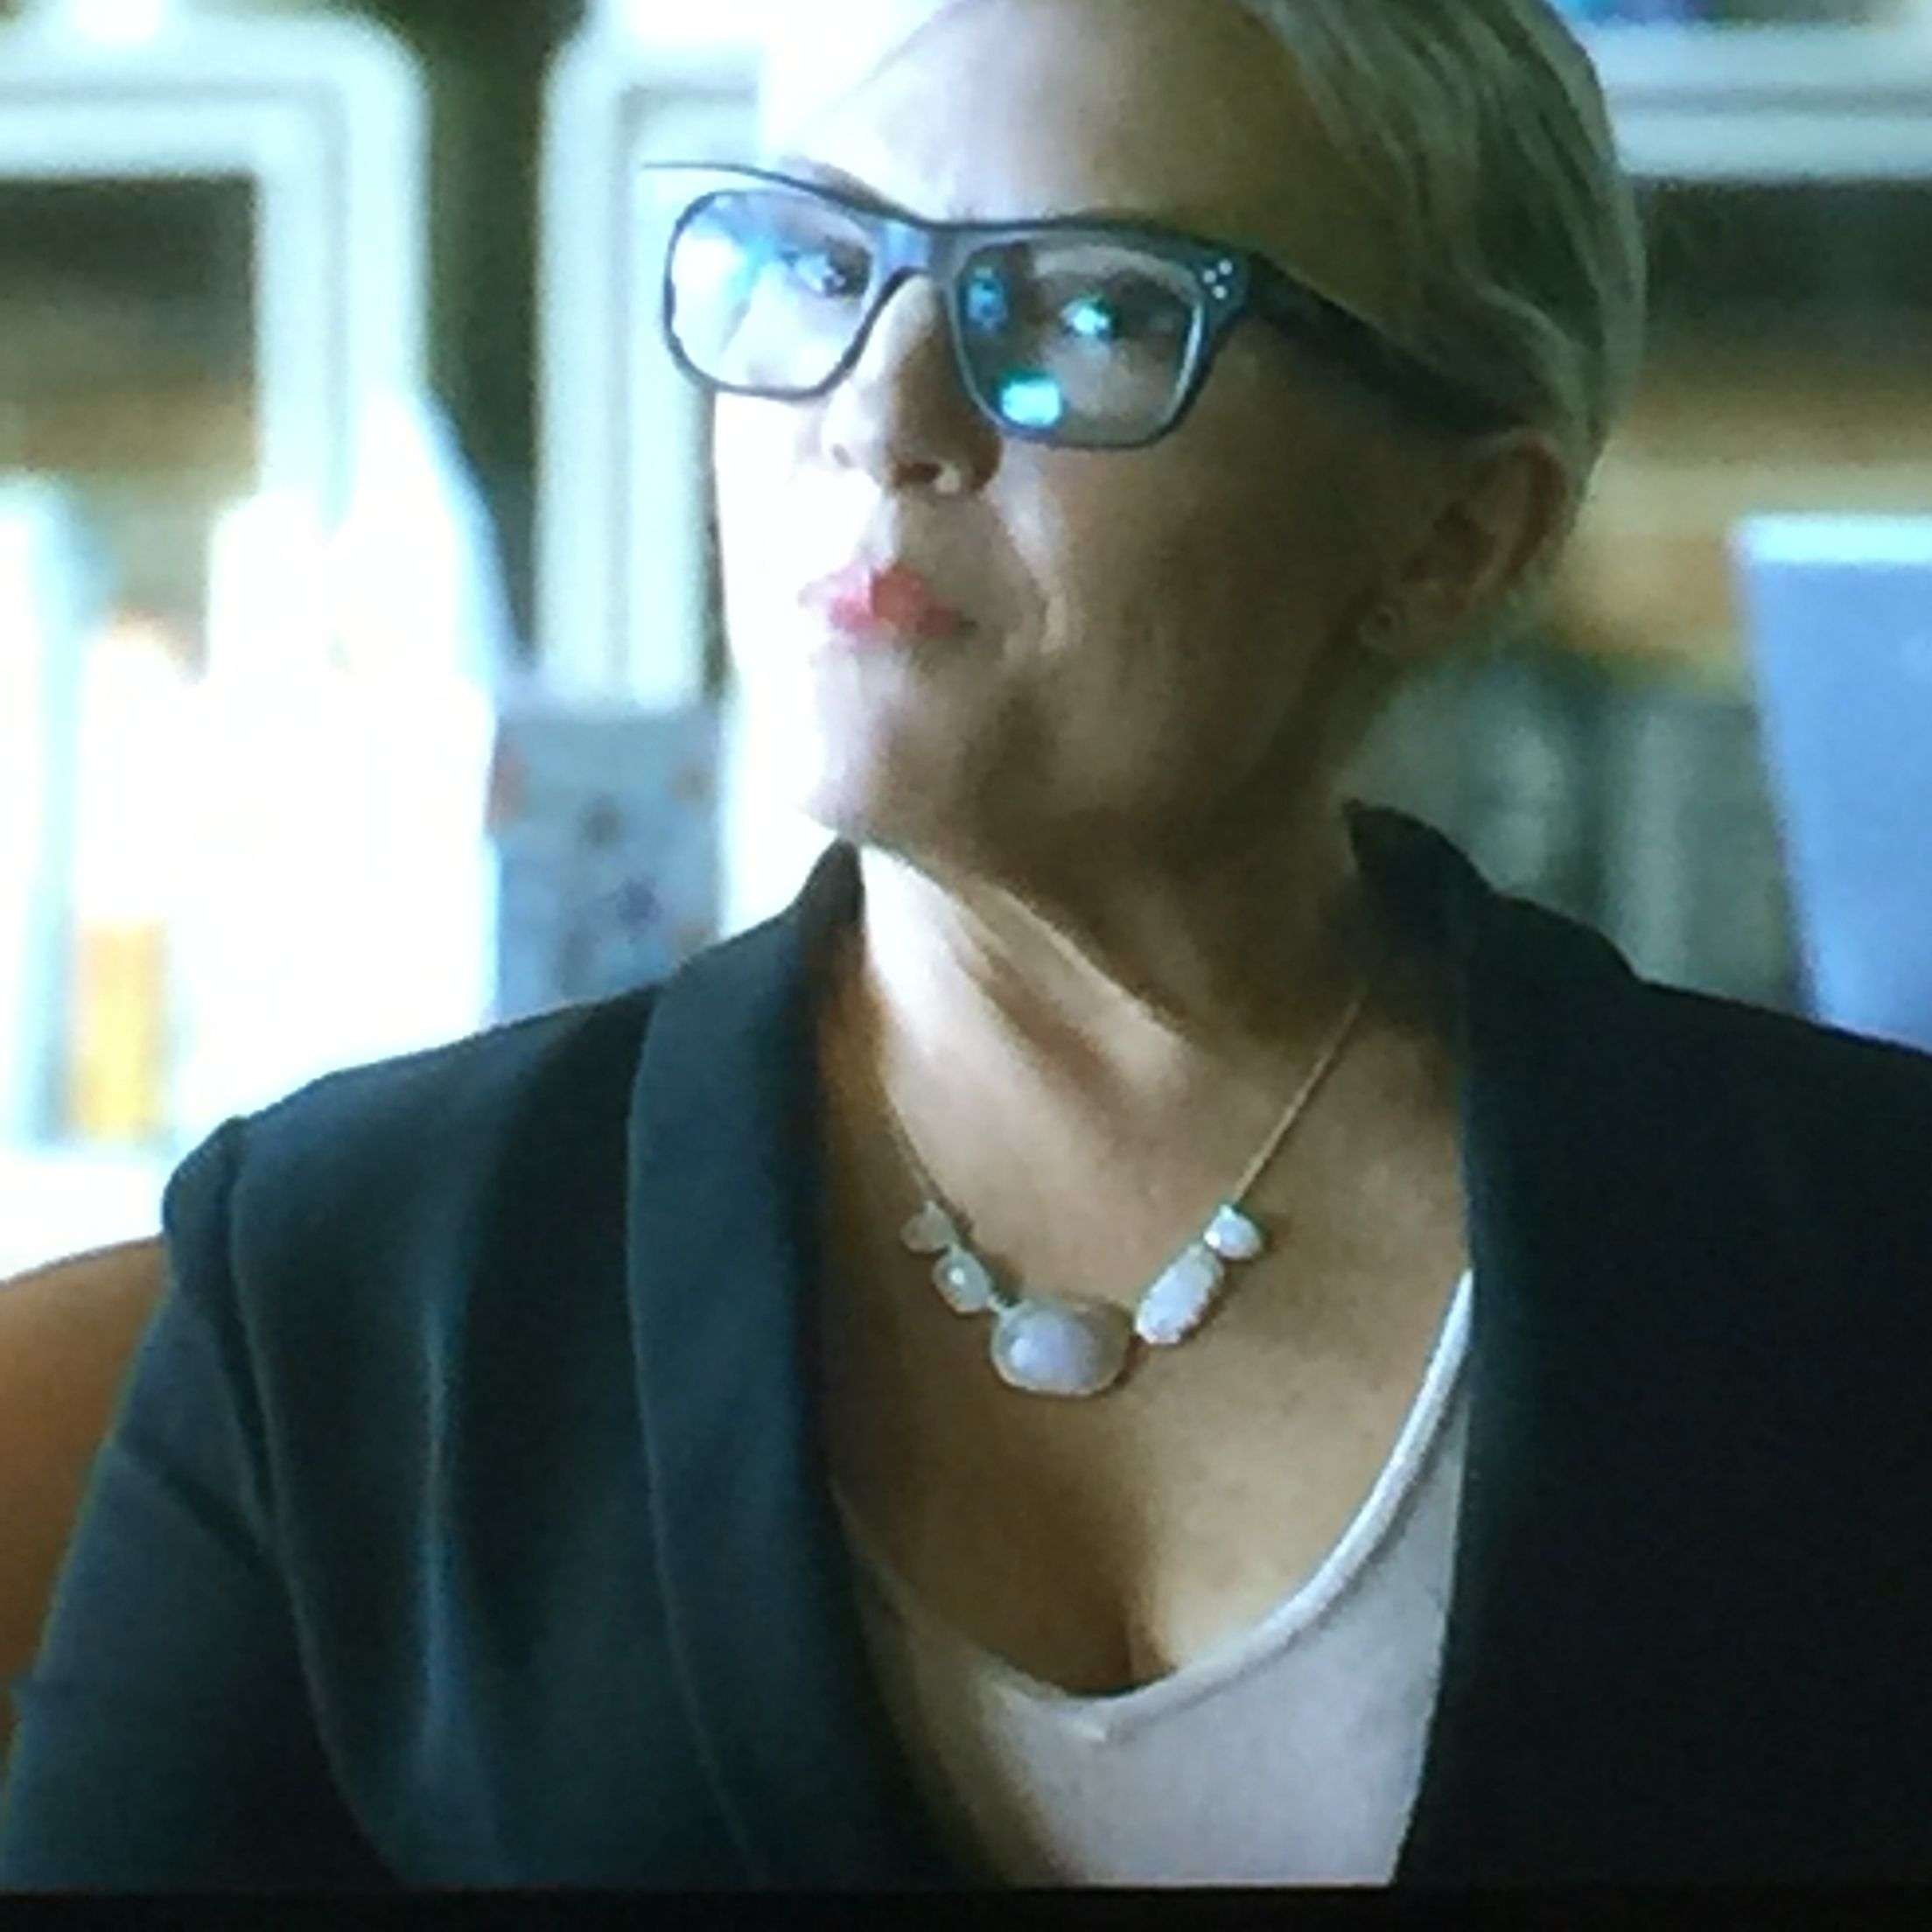 Lovely necklace (Lucifer TV show)